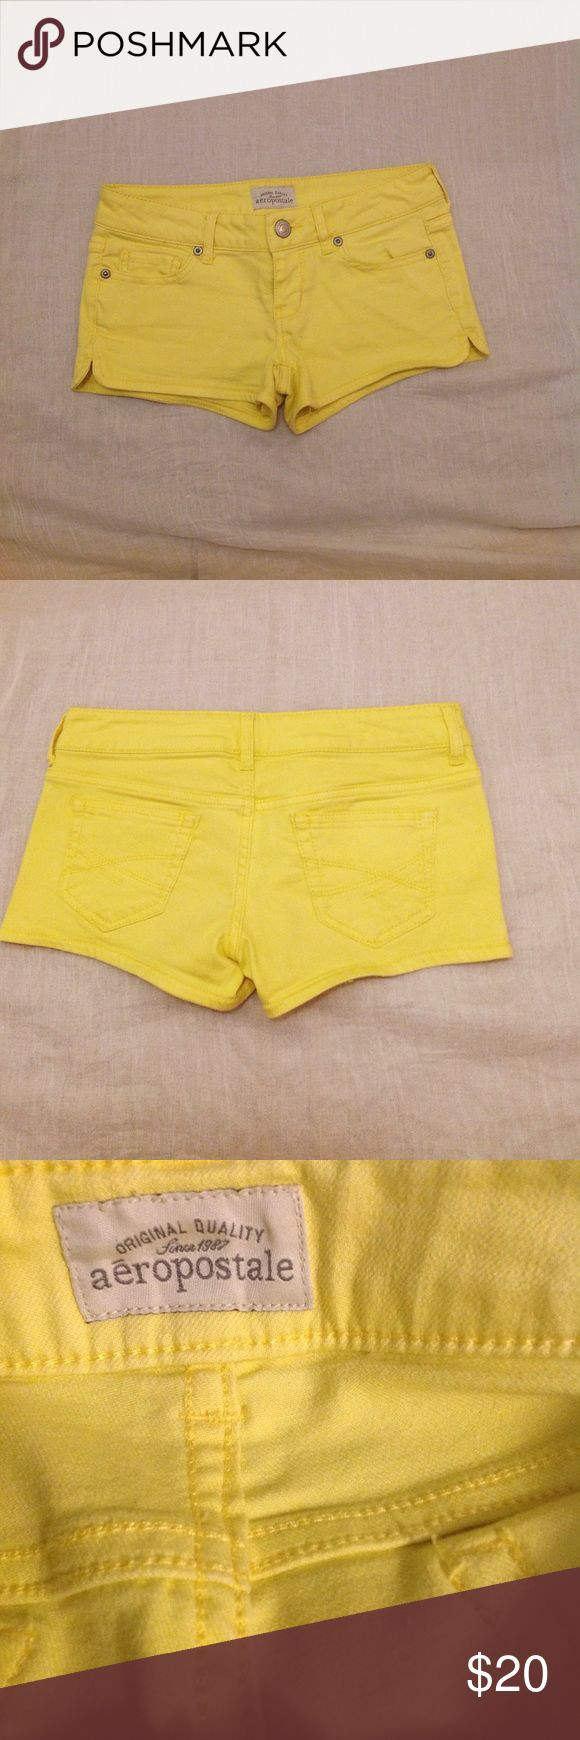 Aeropostale Women's Shorts Yellow Short Shorts  Good Stretch  Size 0 Aeropostale Shorts